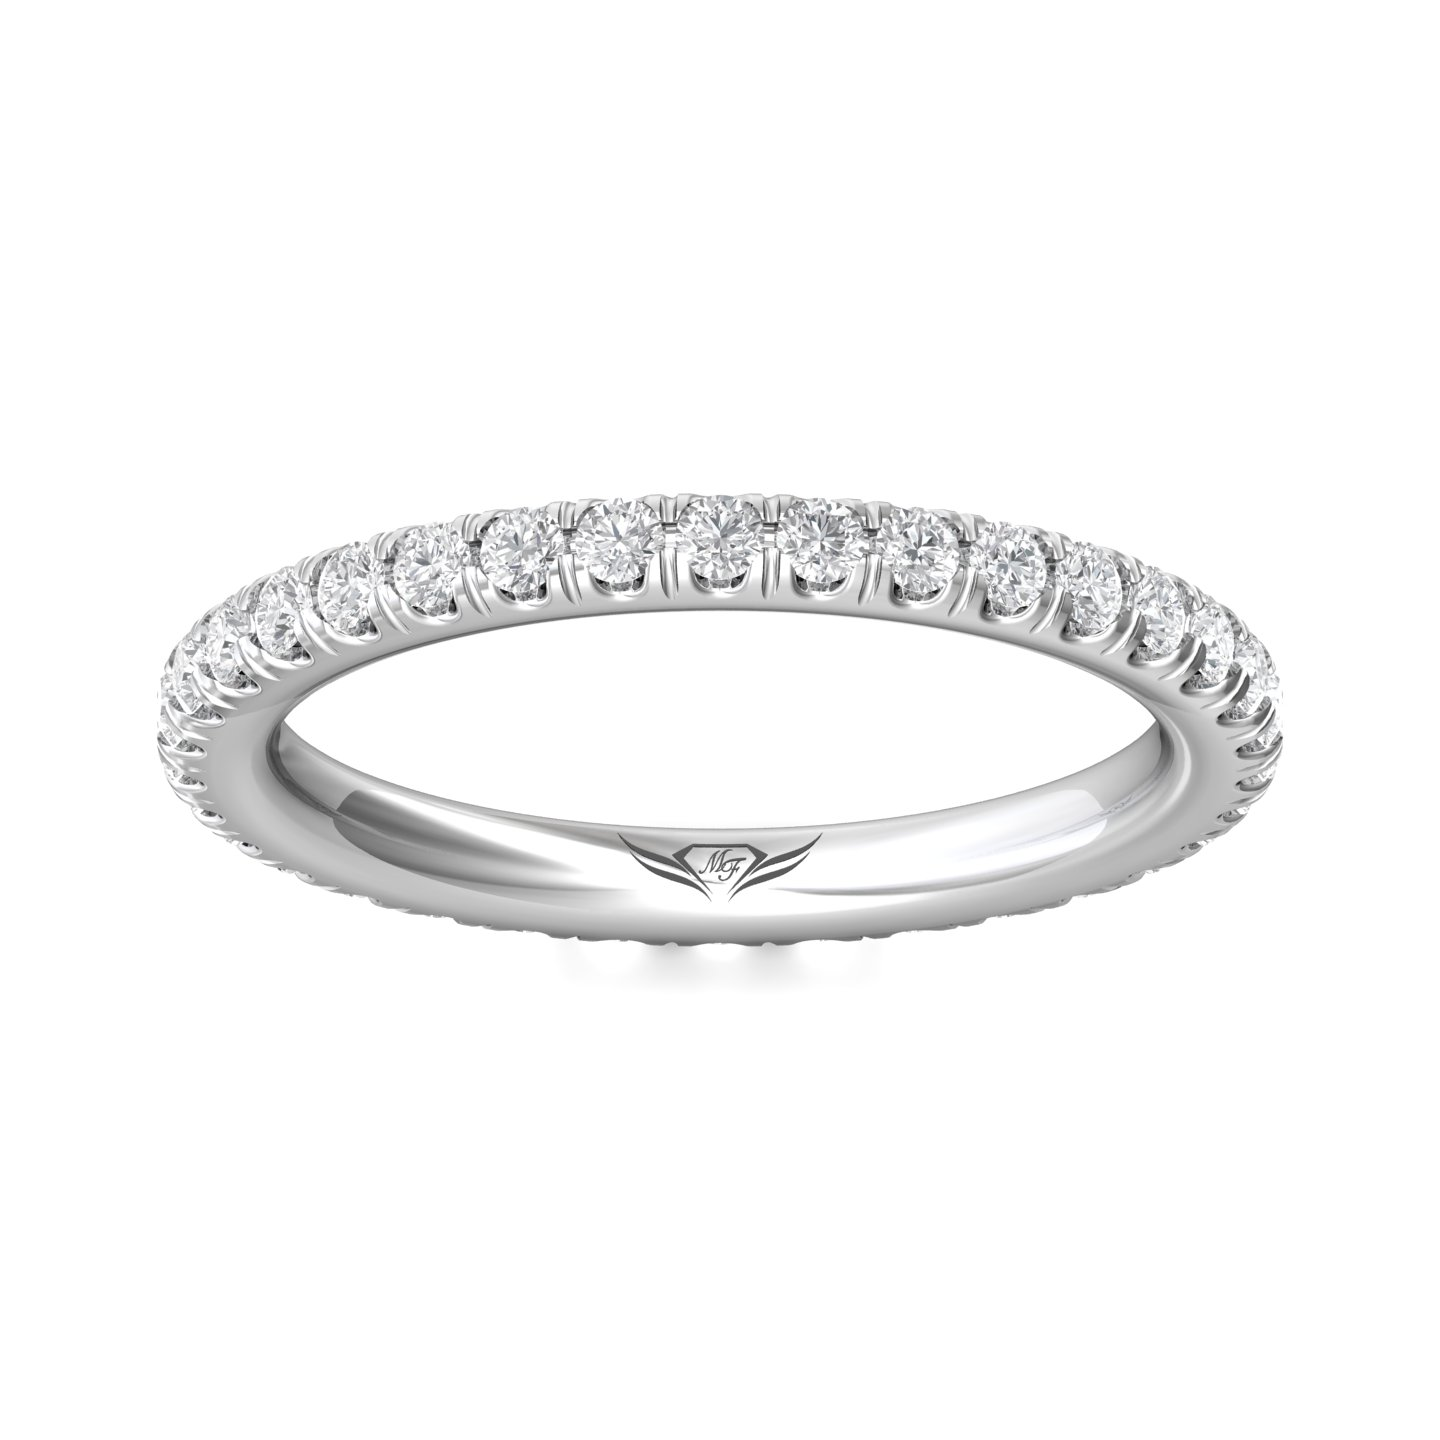 Rings - 14K White Gold FlyerFit Eternity Wedding Band - image 3